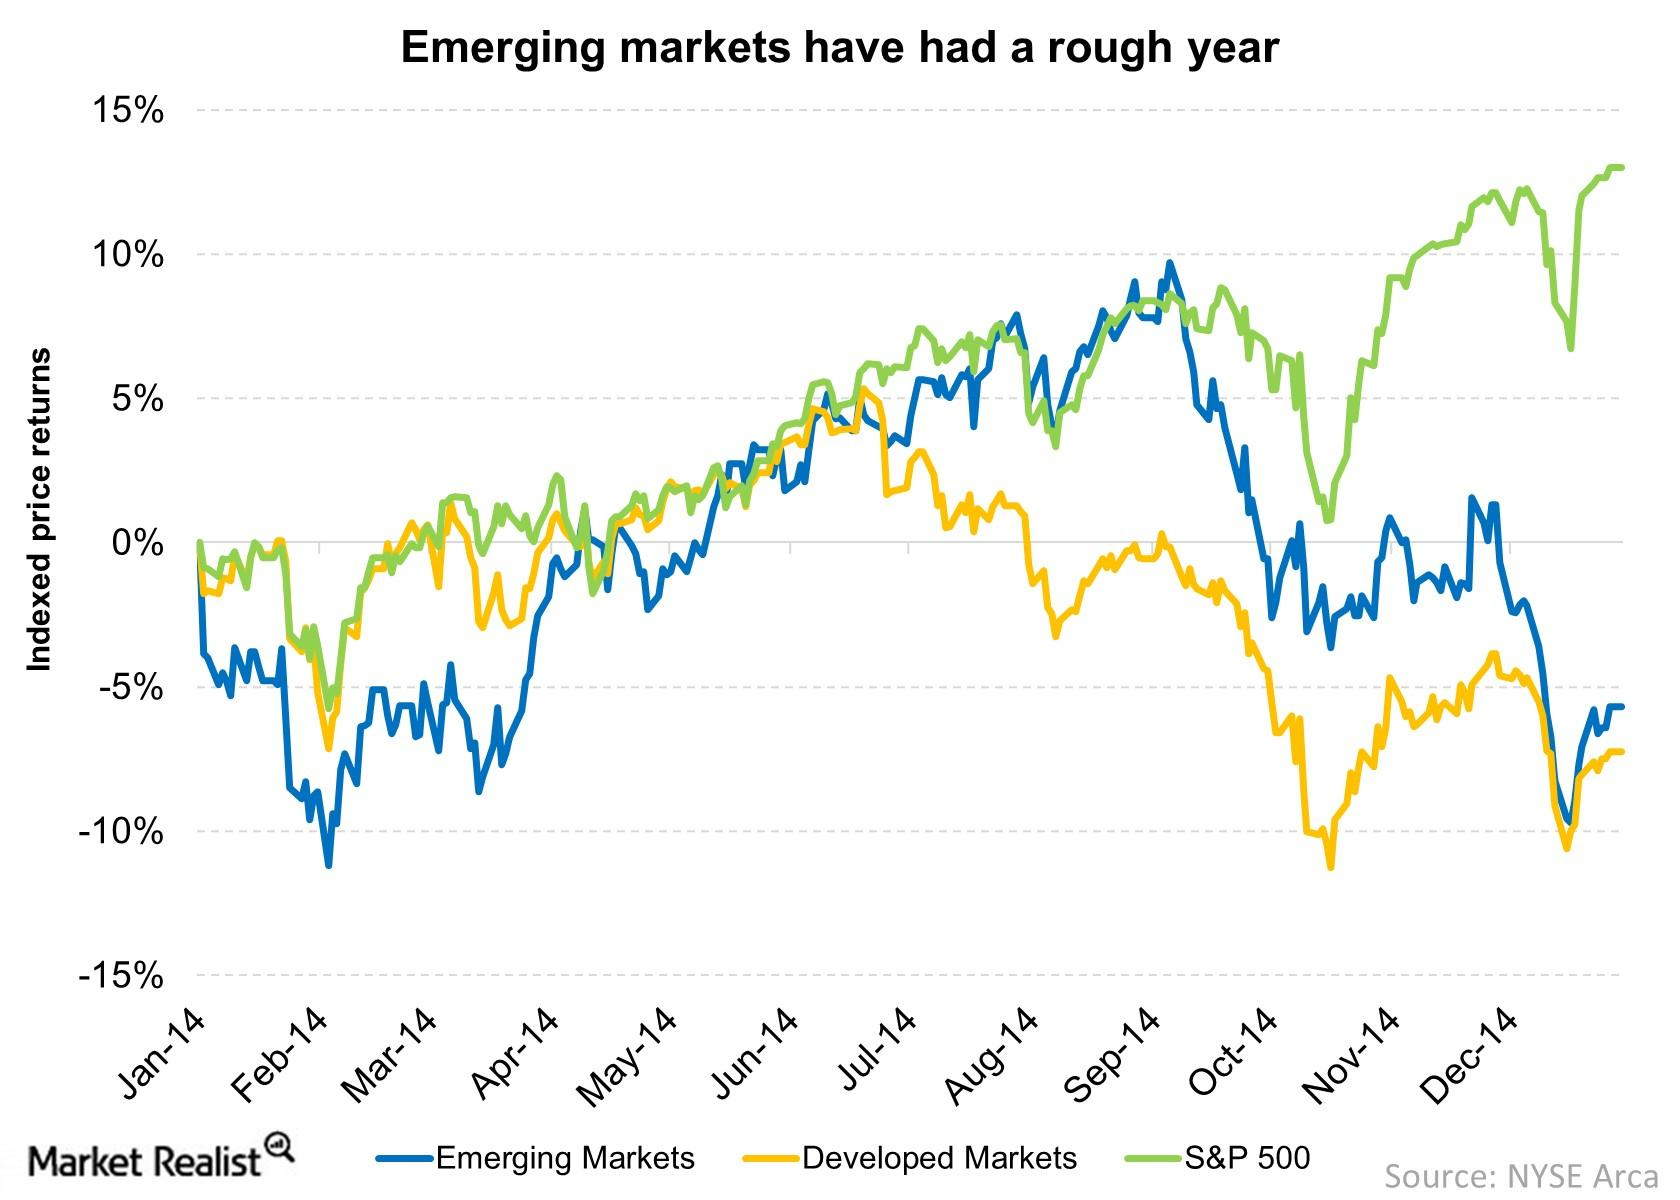 emerging markets have underperfomed in 2014